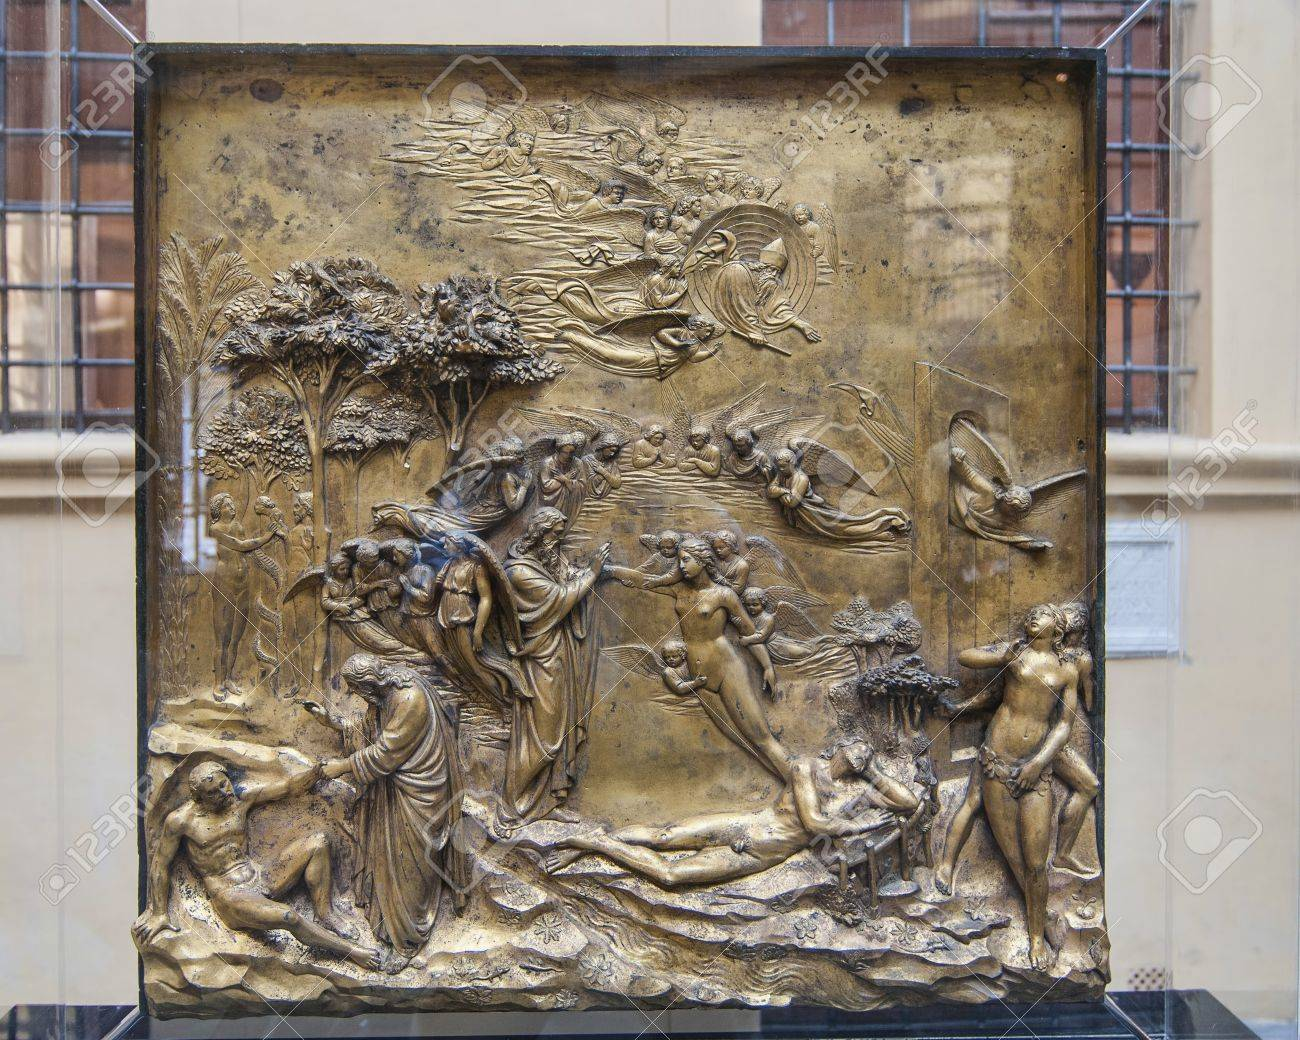 Ghiberti Gold Panel 2 from the baptistry door in Florence Stock Photo - 15381958 & Ghiberti Gold Panel 2 From The Baptistry Door In Florence Stock ...